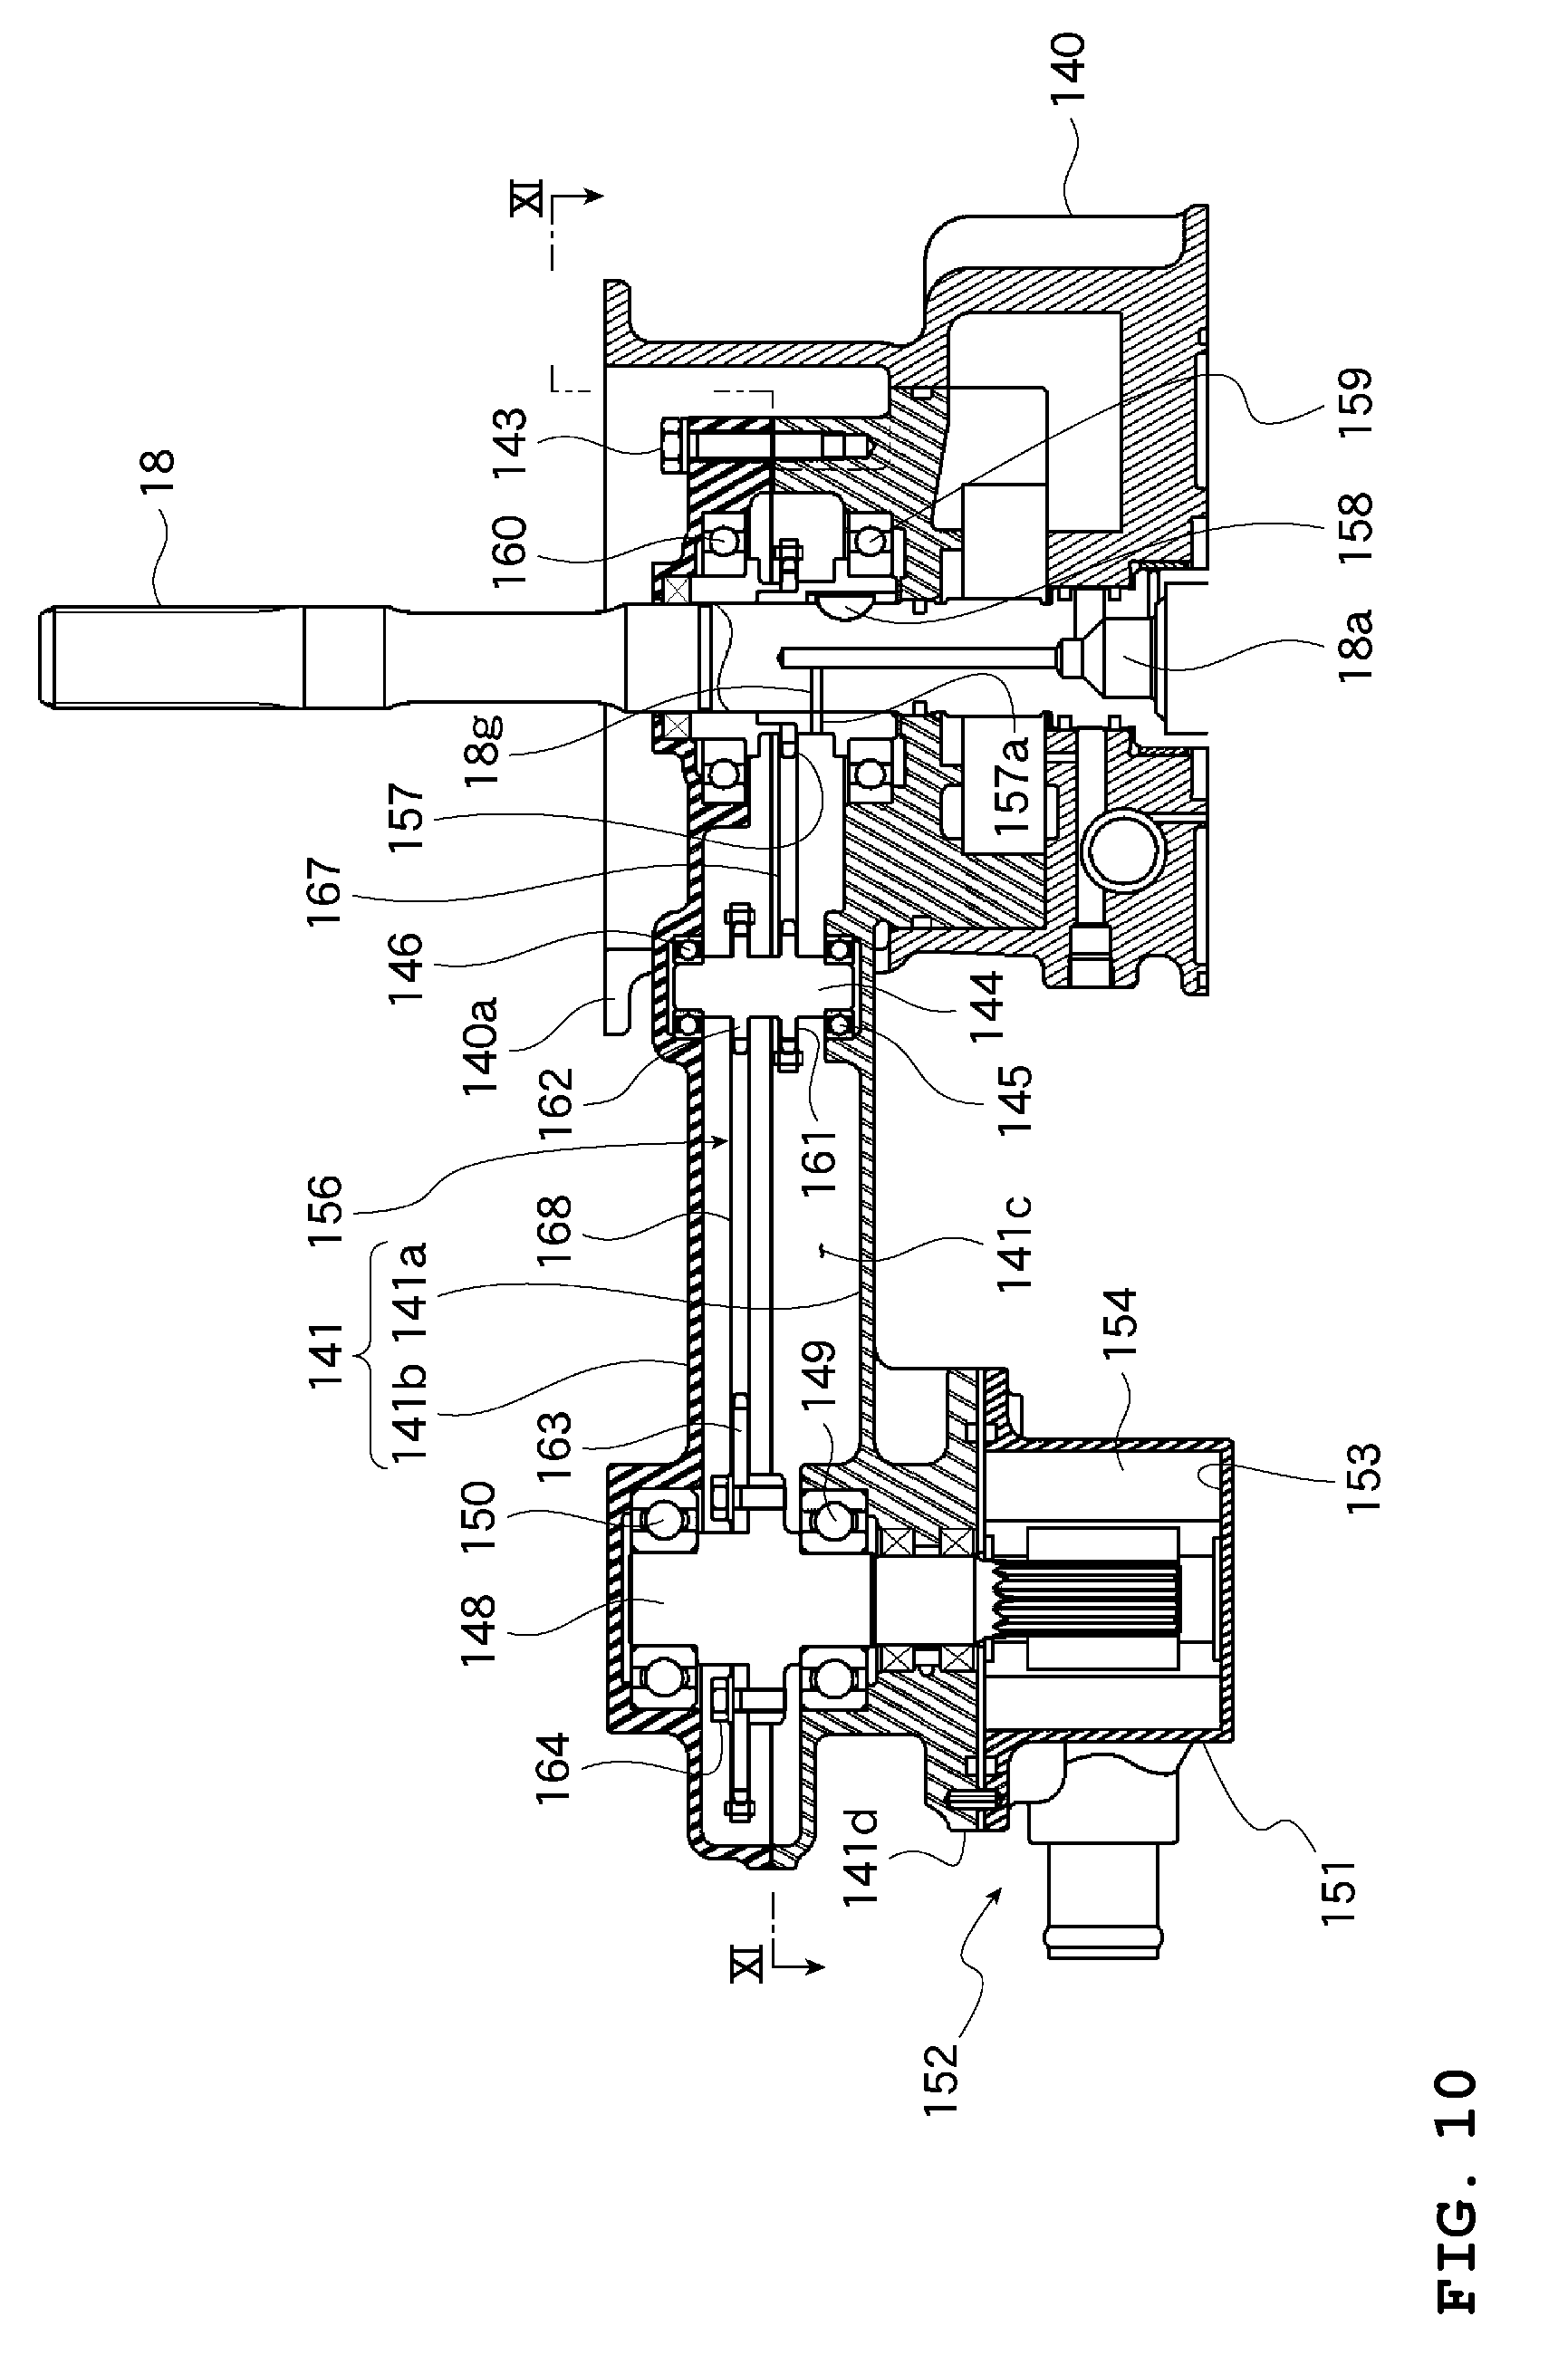 patent us20090163094 outboard motor google patentsMarine Transmission Diagrams As Well As Patent Us8715022 Marine Vessel #10